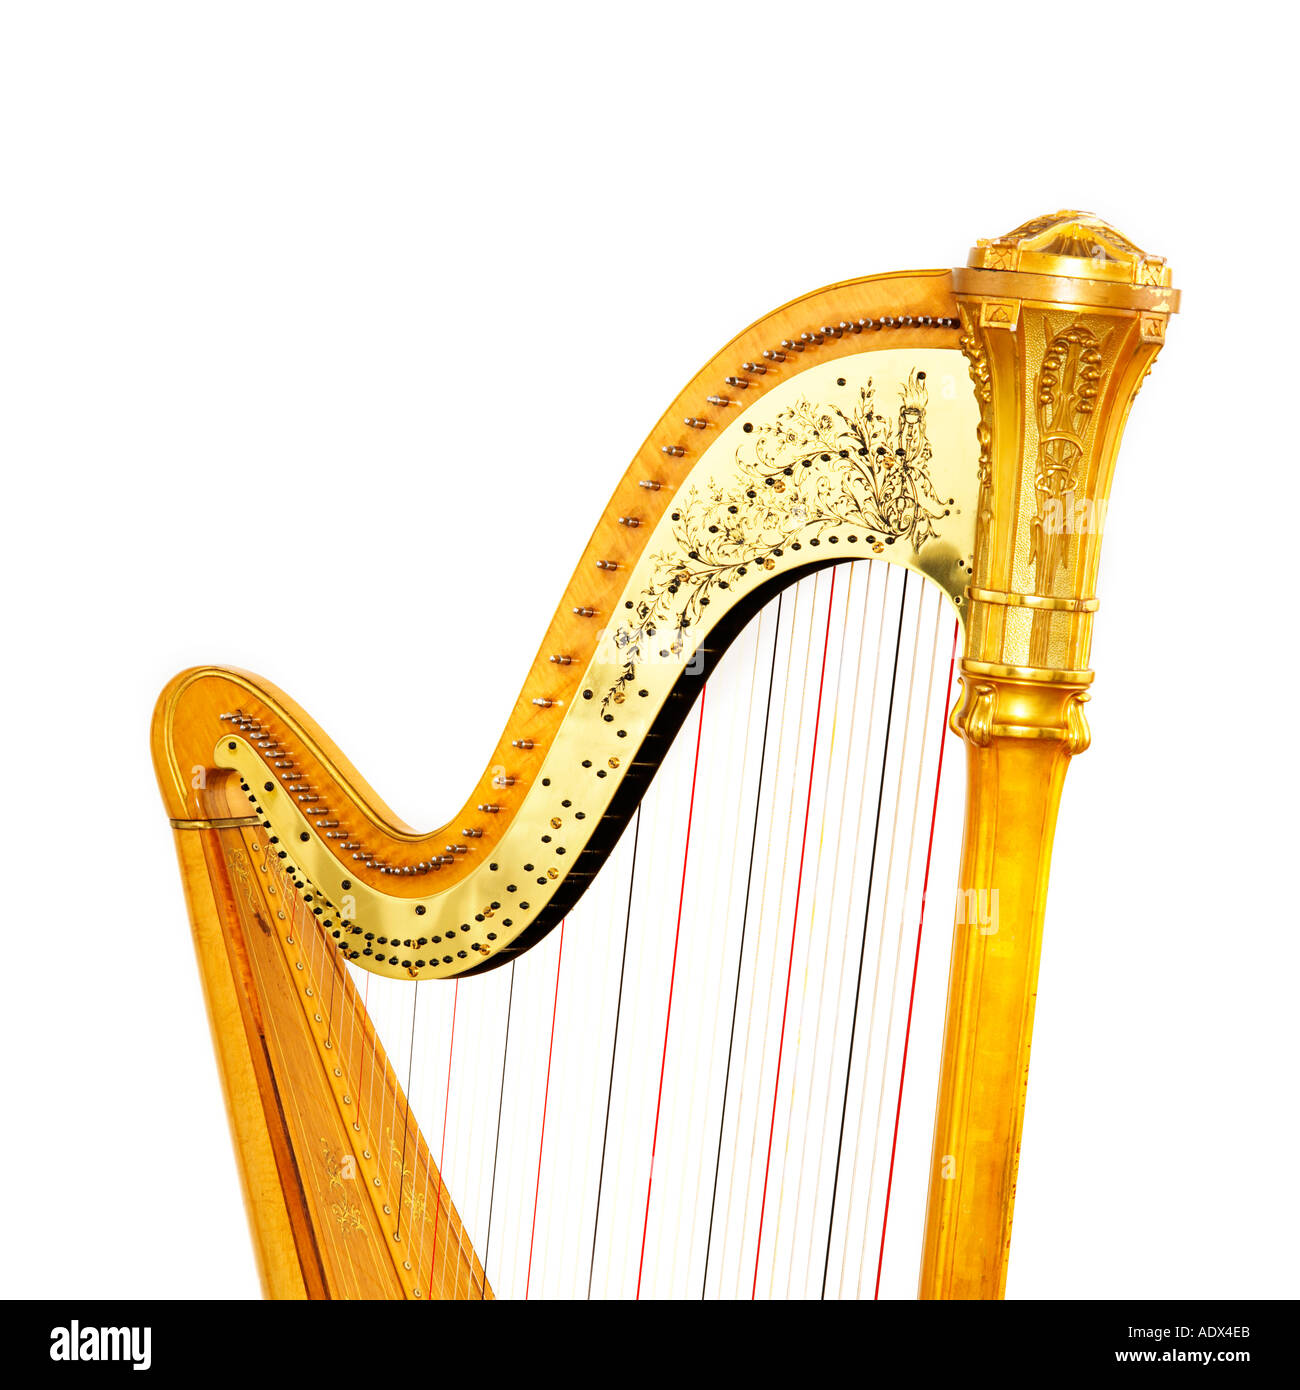 Harp on a white background - Stock Image